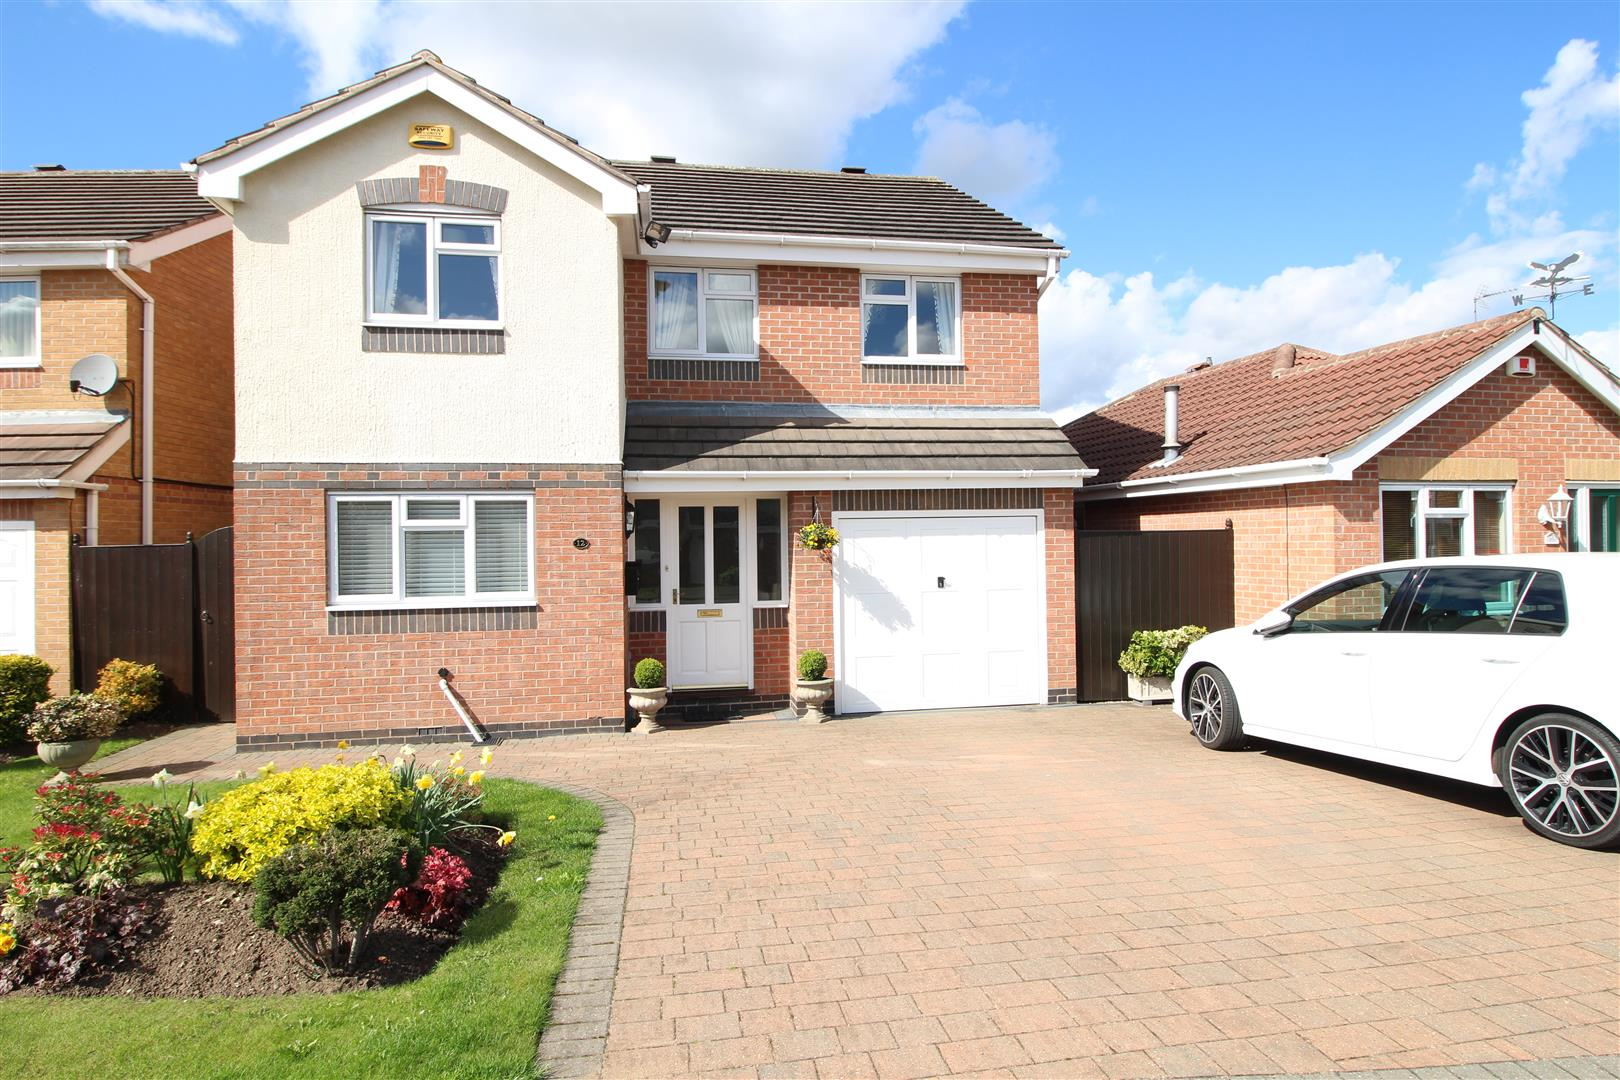 4 Bedrooms Detached House for sale in Allison Gardens, Chilwell, Nottingham